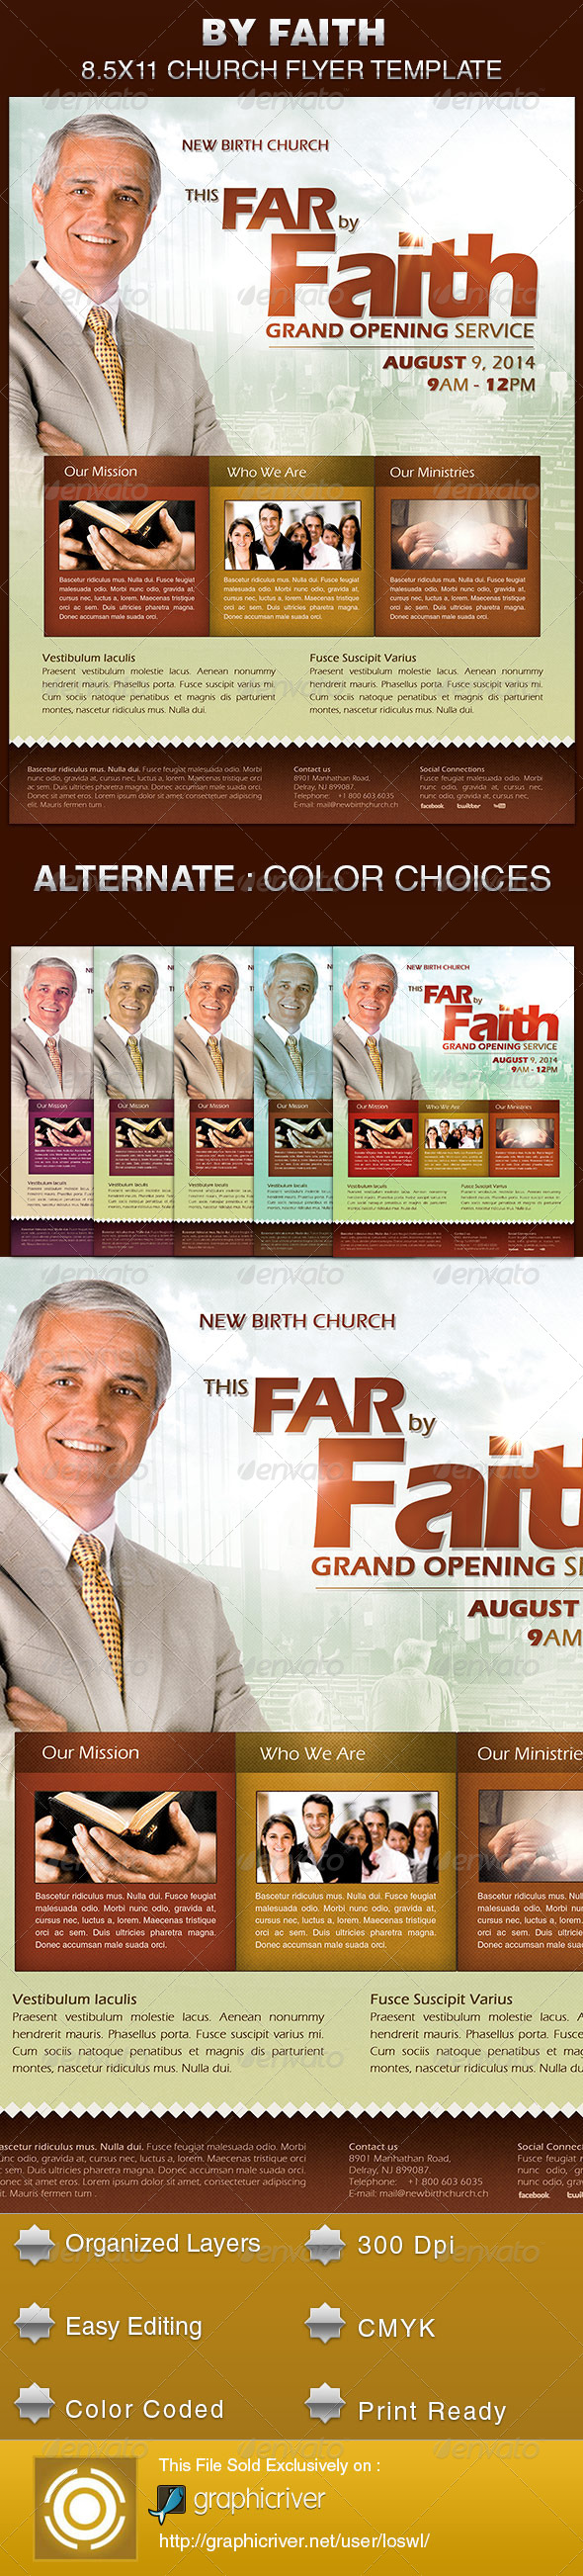 GraphicRiver By Faith Church Grand Opening Flyer Template 5562771